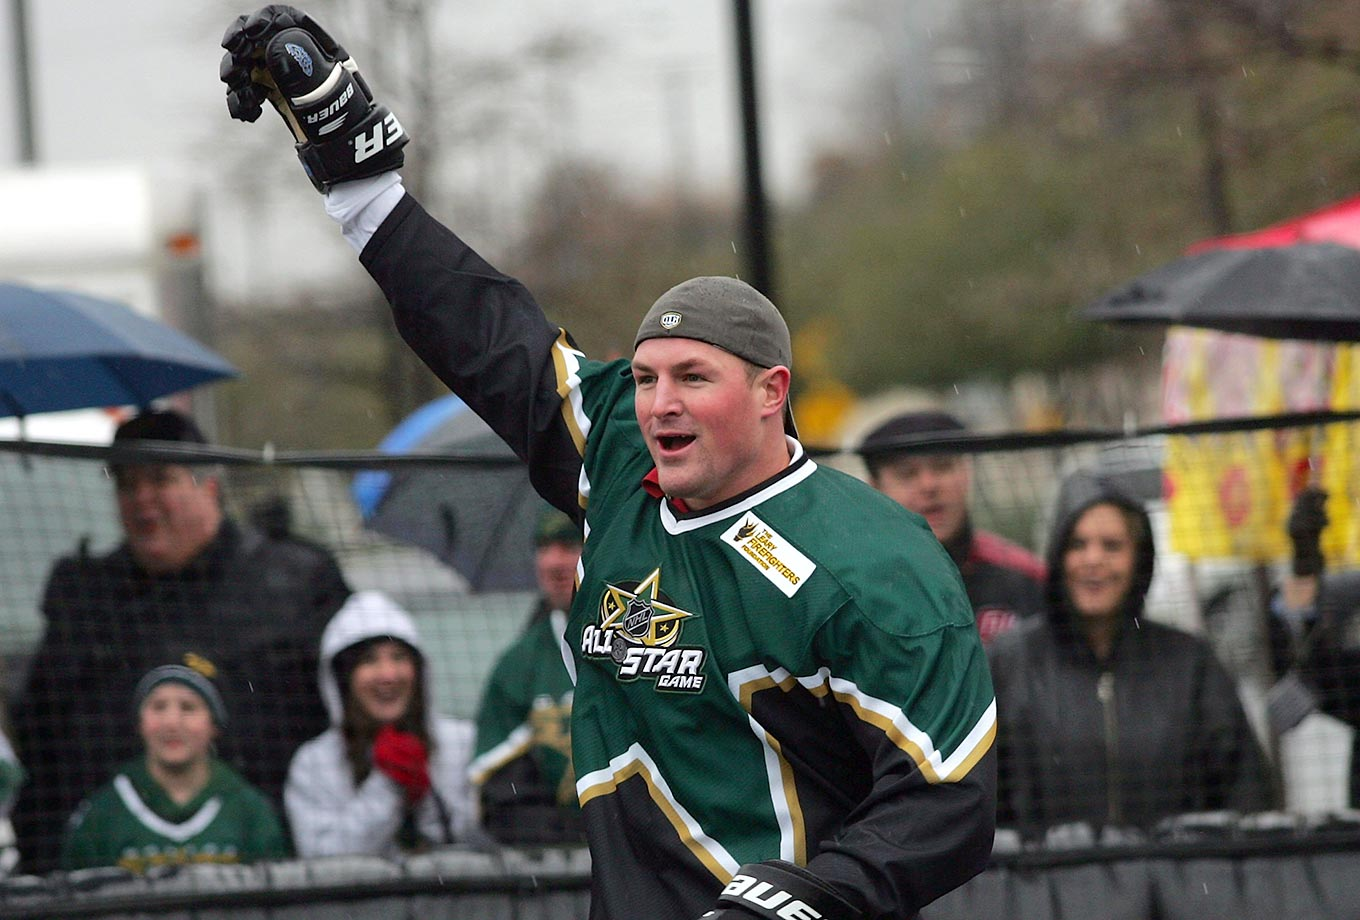 Witten in Dallas Stars garb.